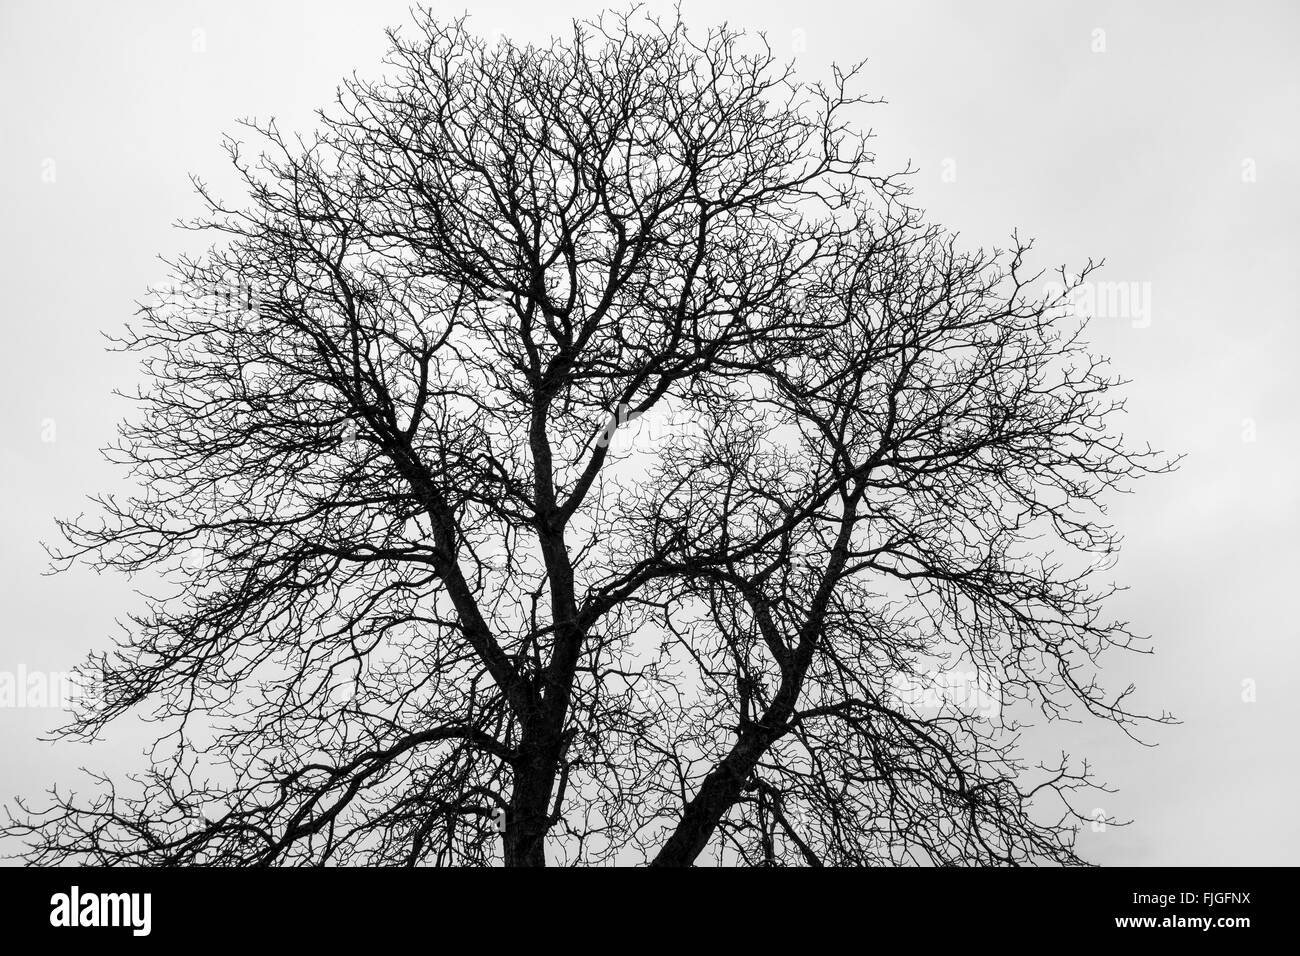 Treetop of a fine branched, bare tree against gray sky - Stock Image